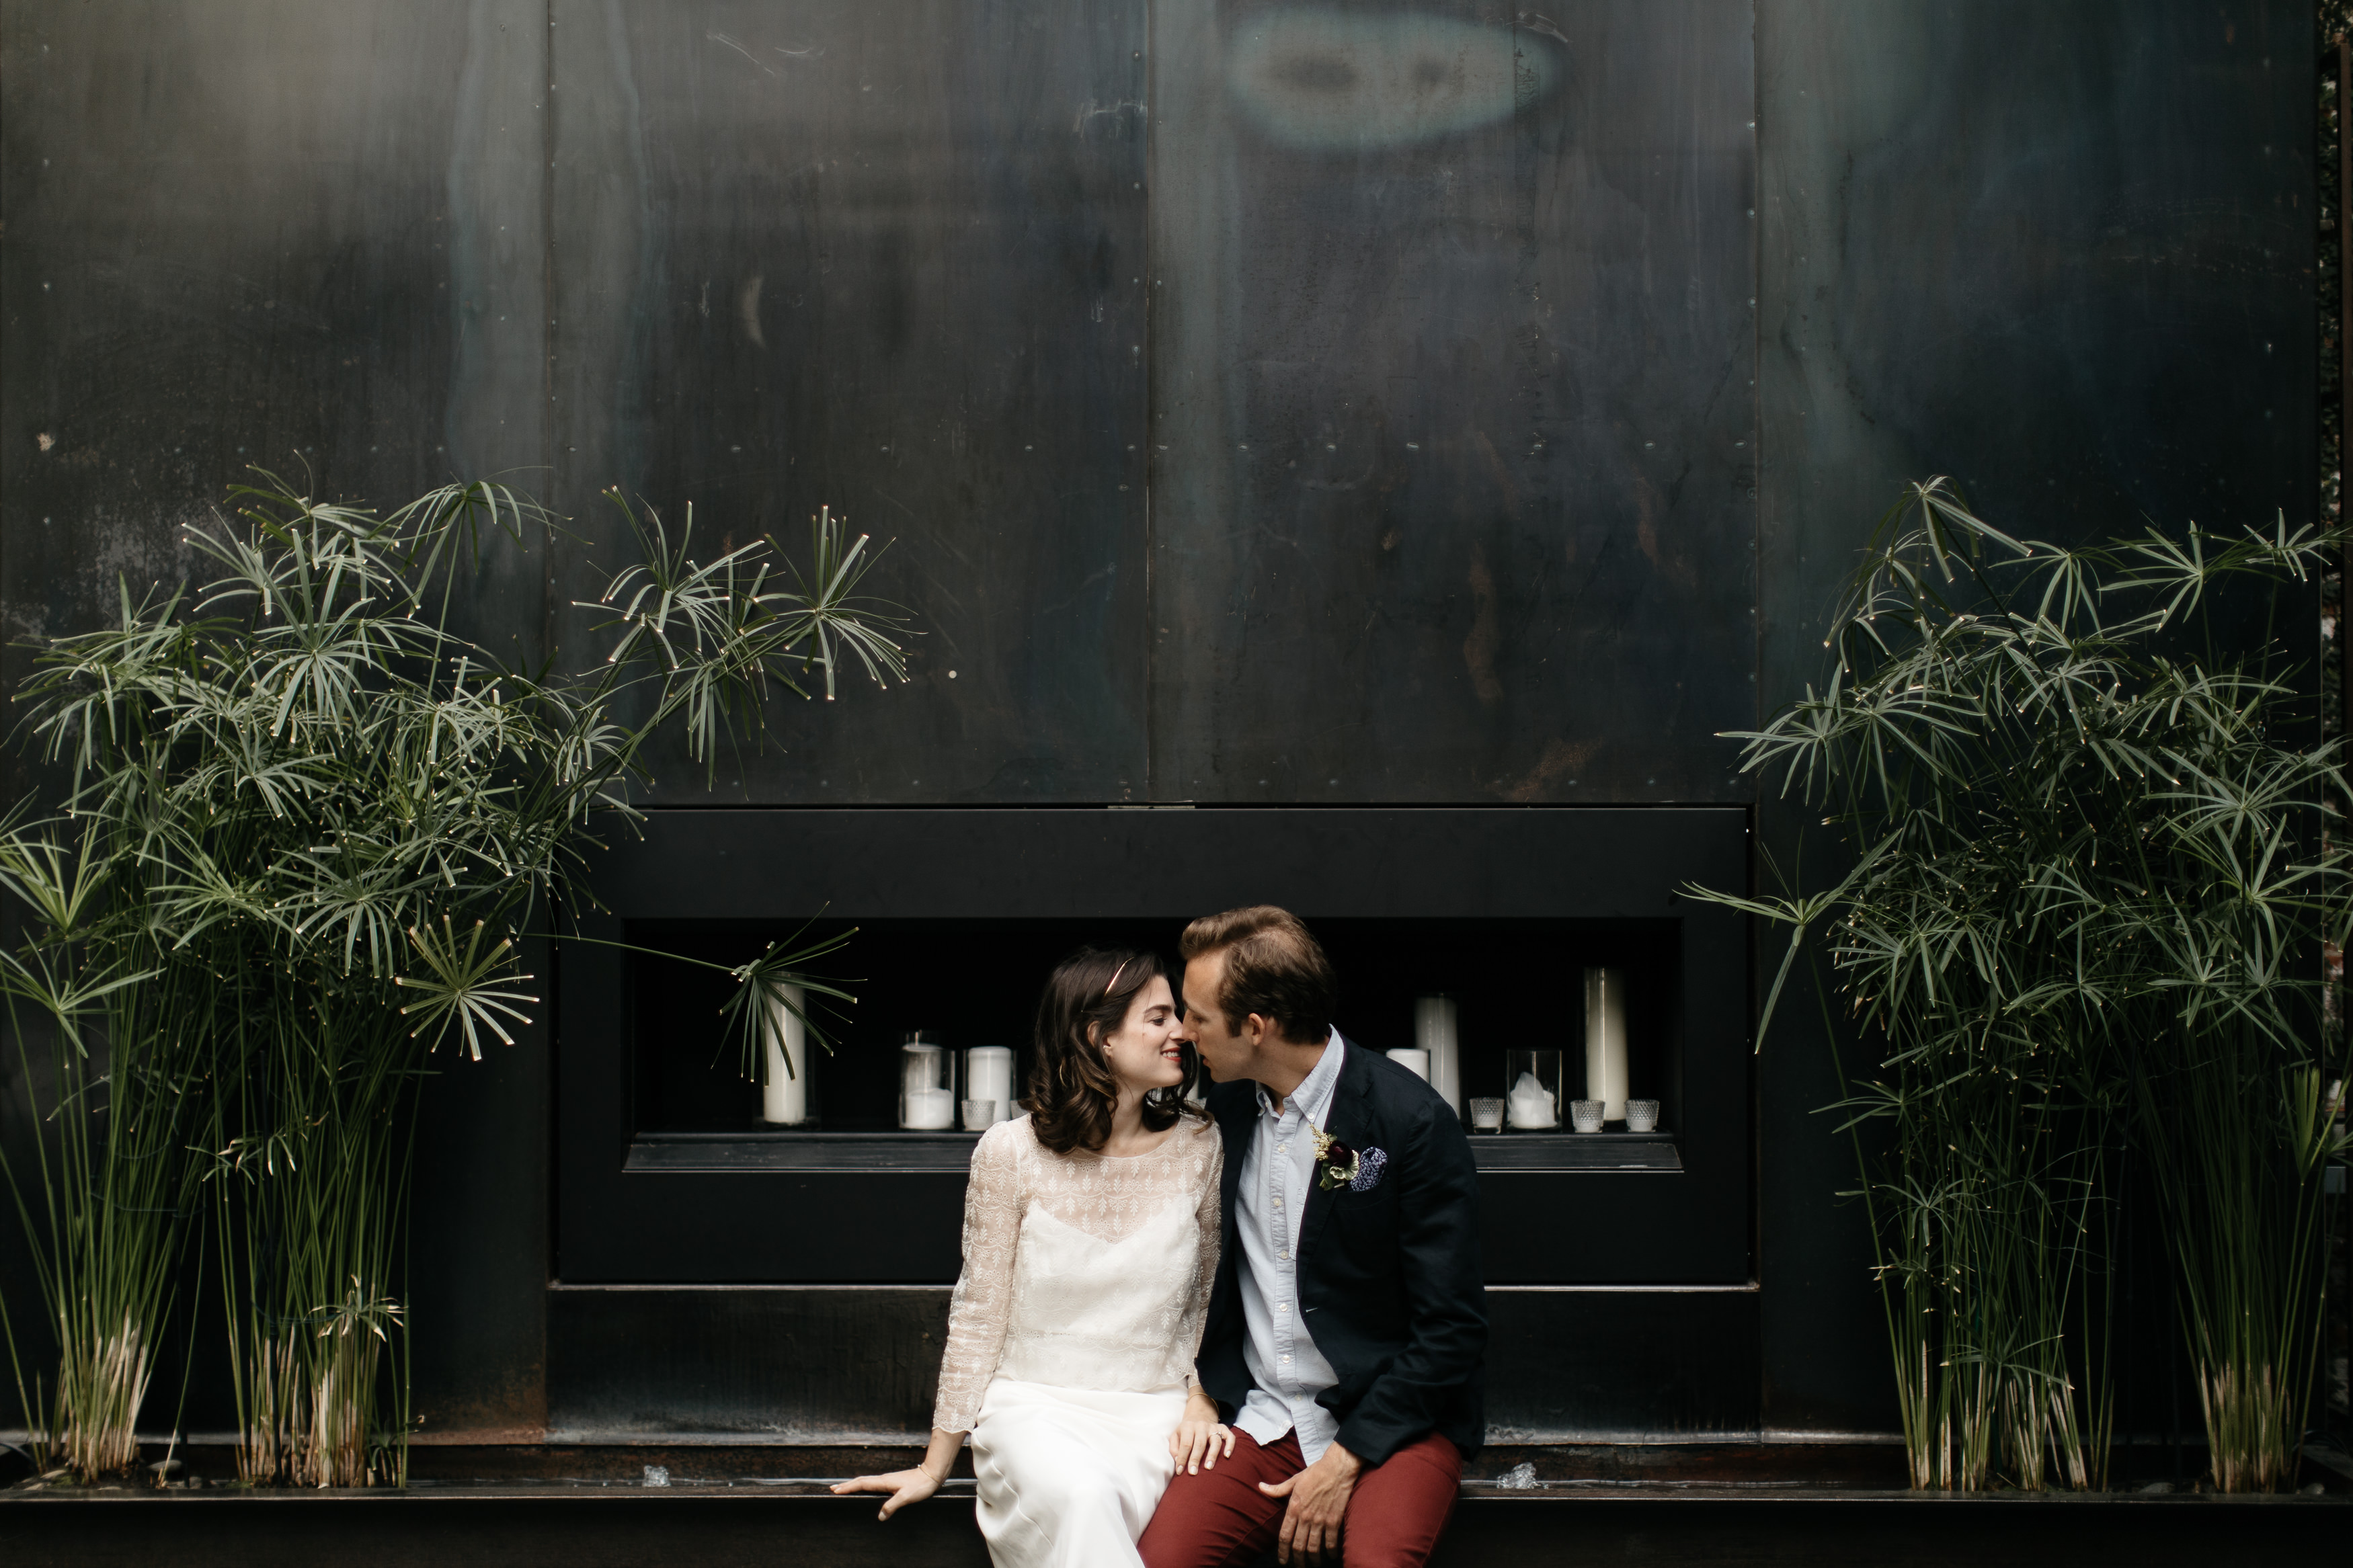 A romantic Industrial Elopement Wedding at The Foundry The Creatives Loft Wedding Planning Jean Laurent Gaudy Wedding Photographer